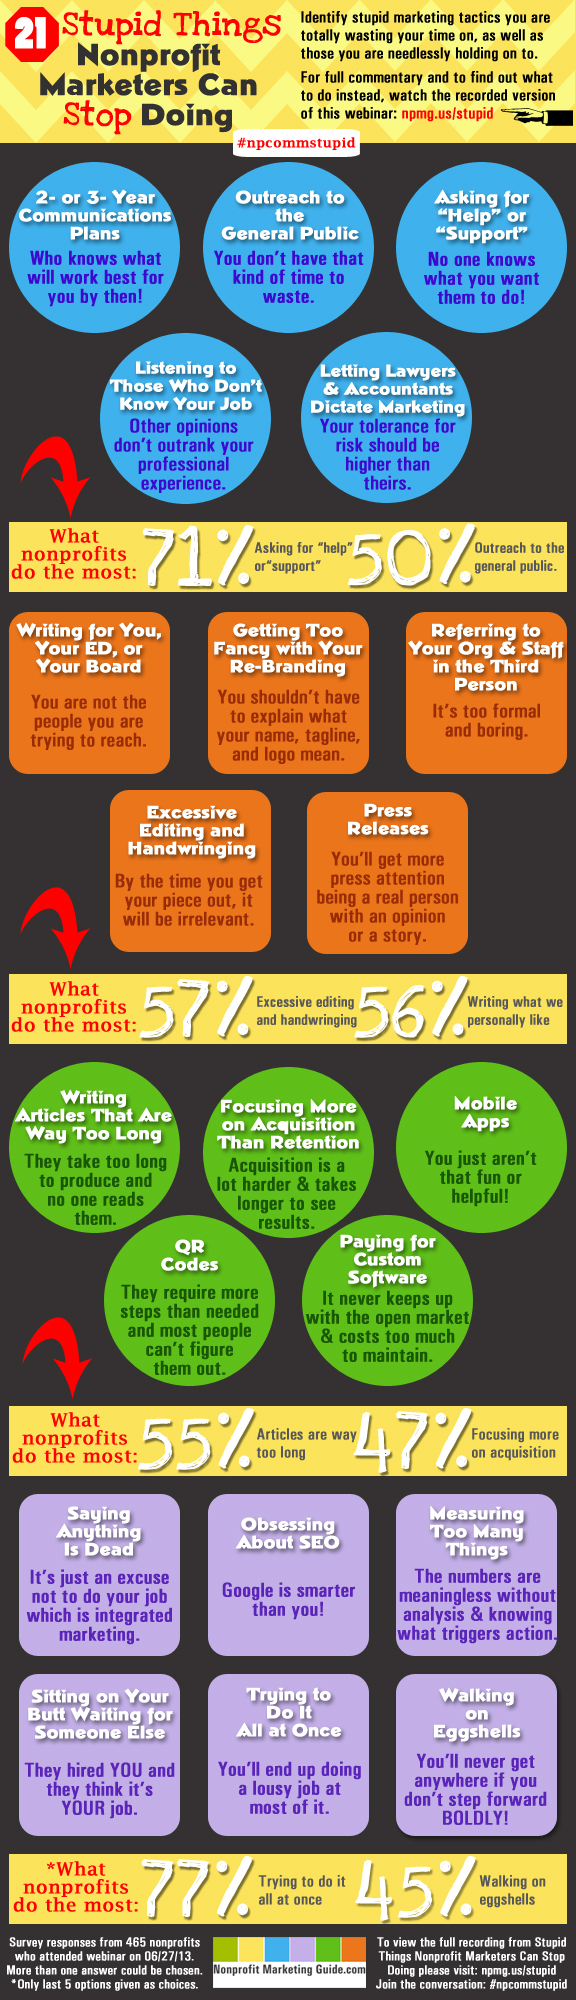 21 Stupid Things You Can Stop Doing [Infographic and Recording]